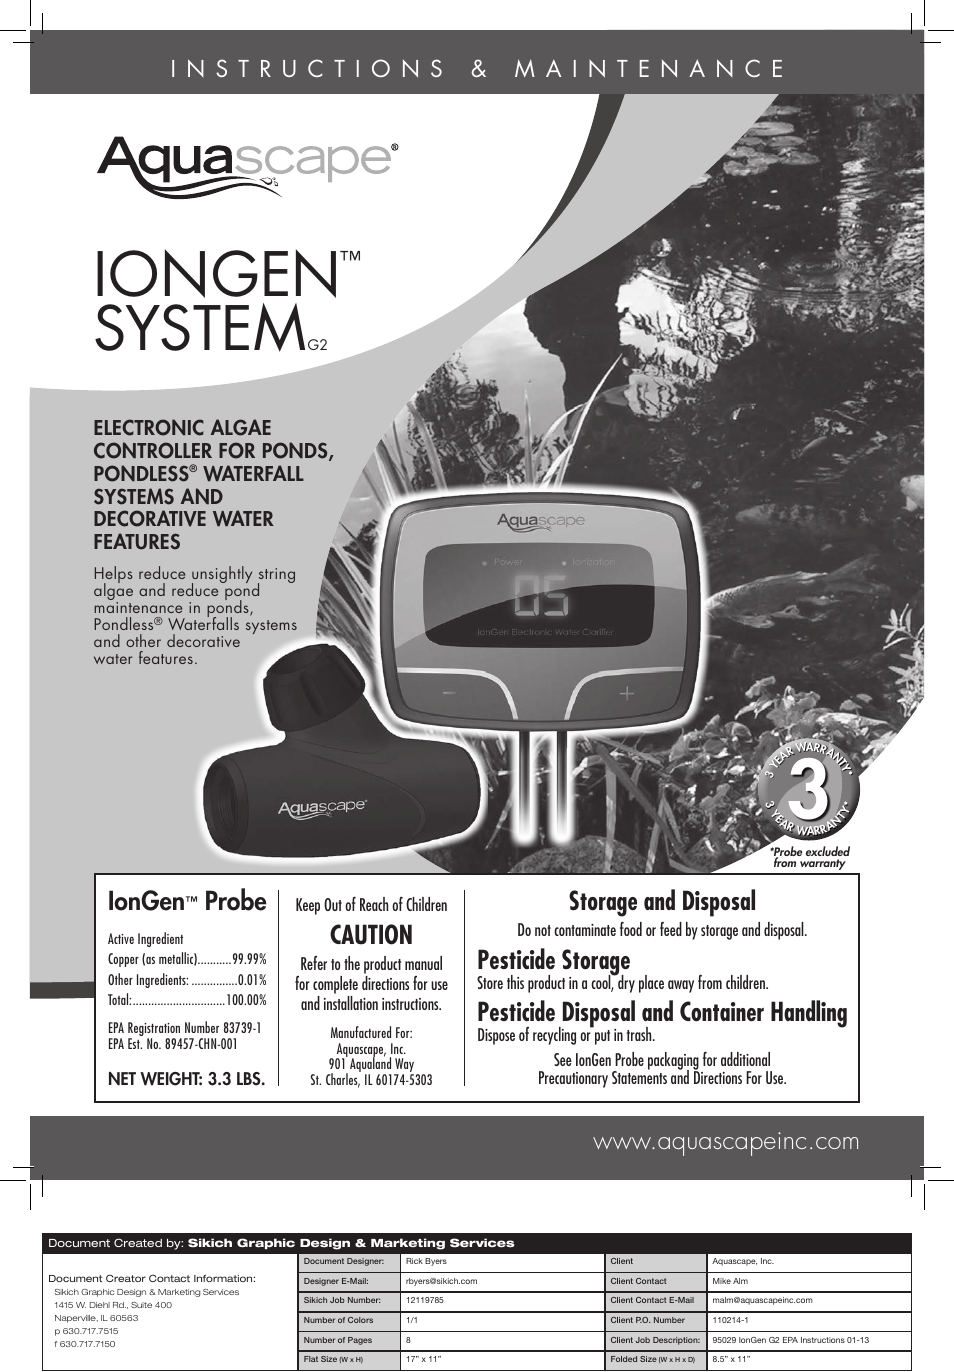 Aquascape IonGen Generation G2 (95027) User Manual | 8 pages